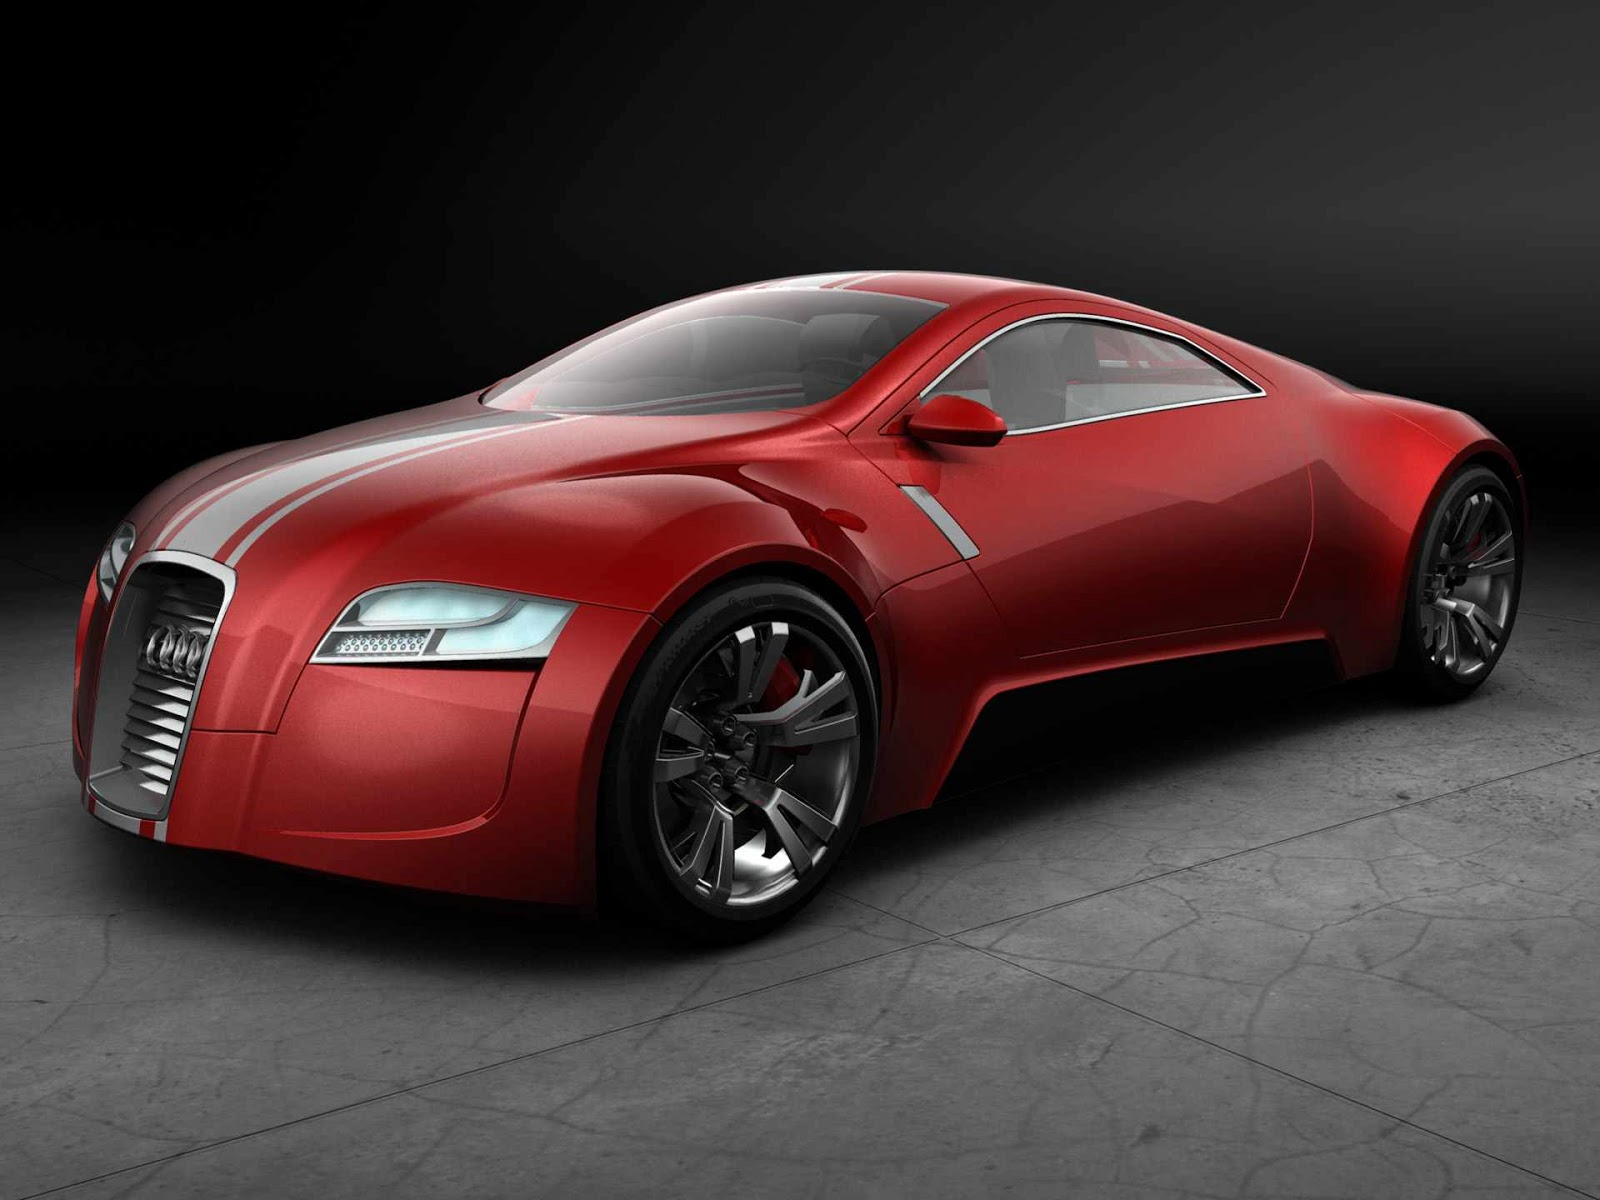 POEMS, NICE HD WALLPAPERS, OTHERS: 3D HD Car Wallpaper